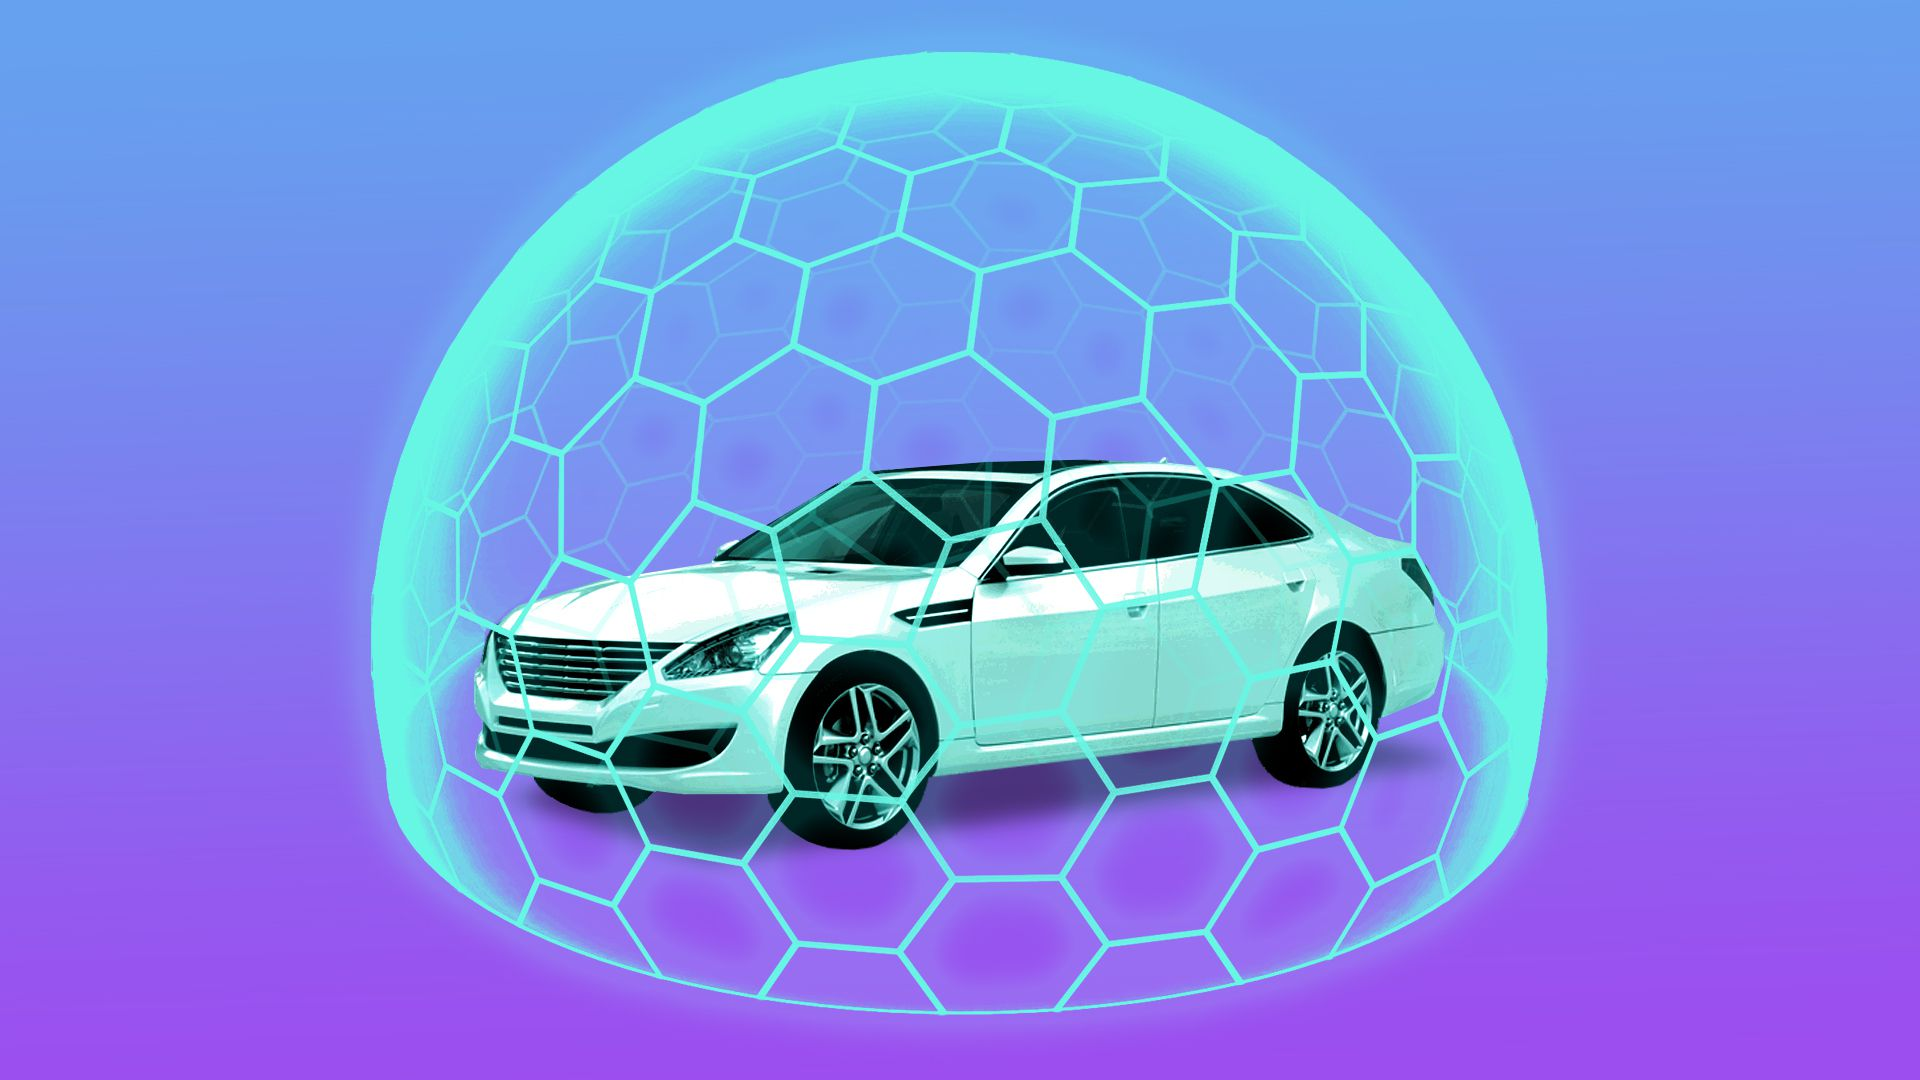 Machine learning could protect self-driving car systems from cyberattacks